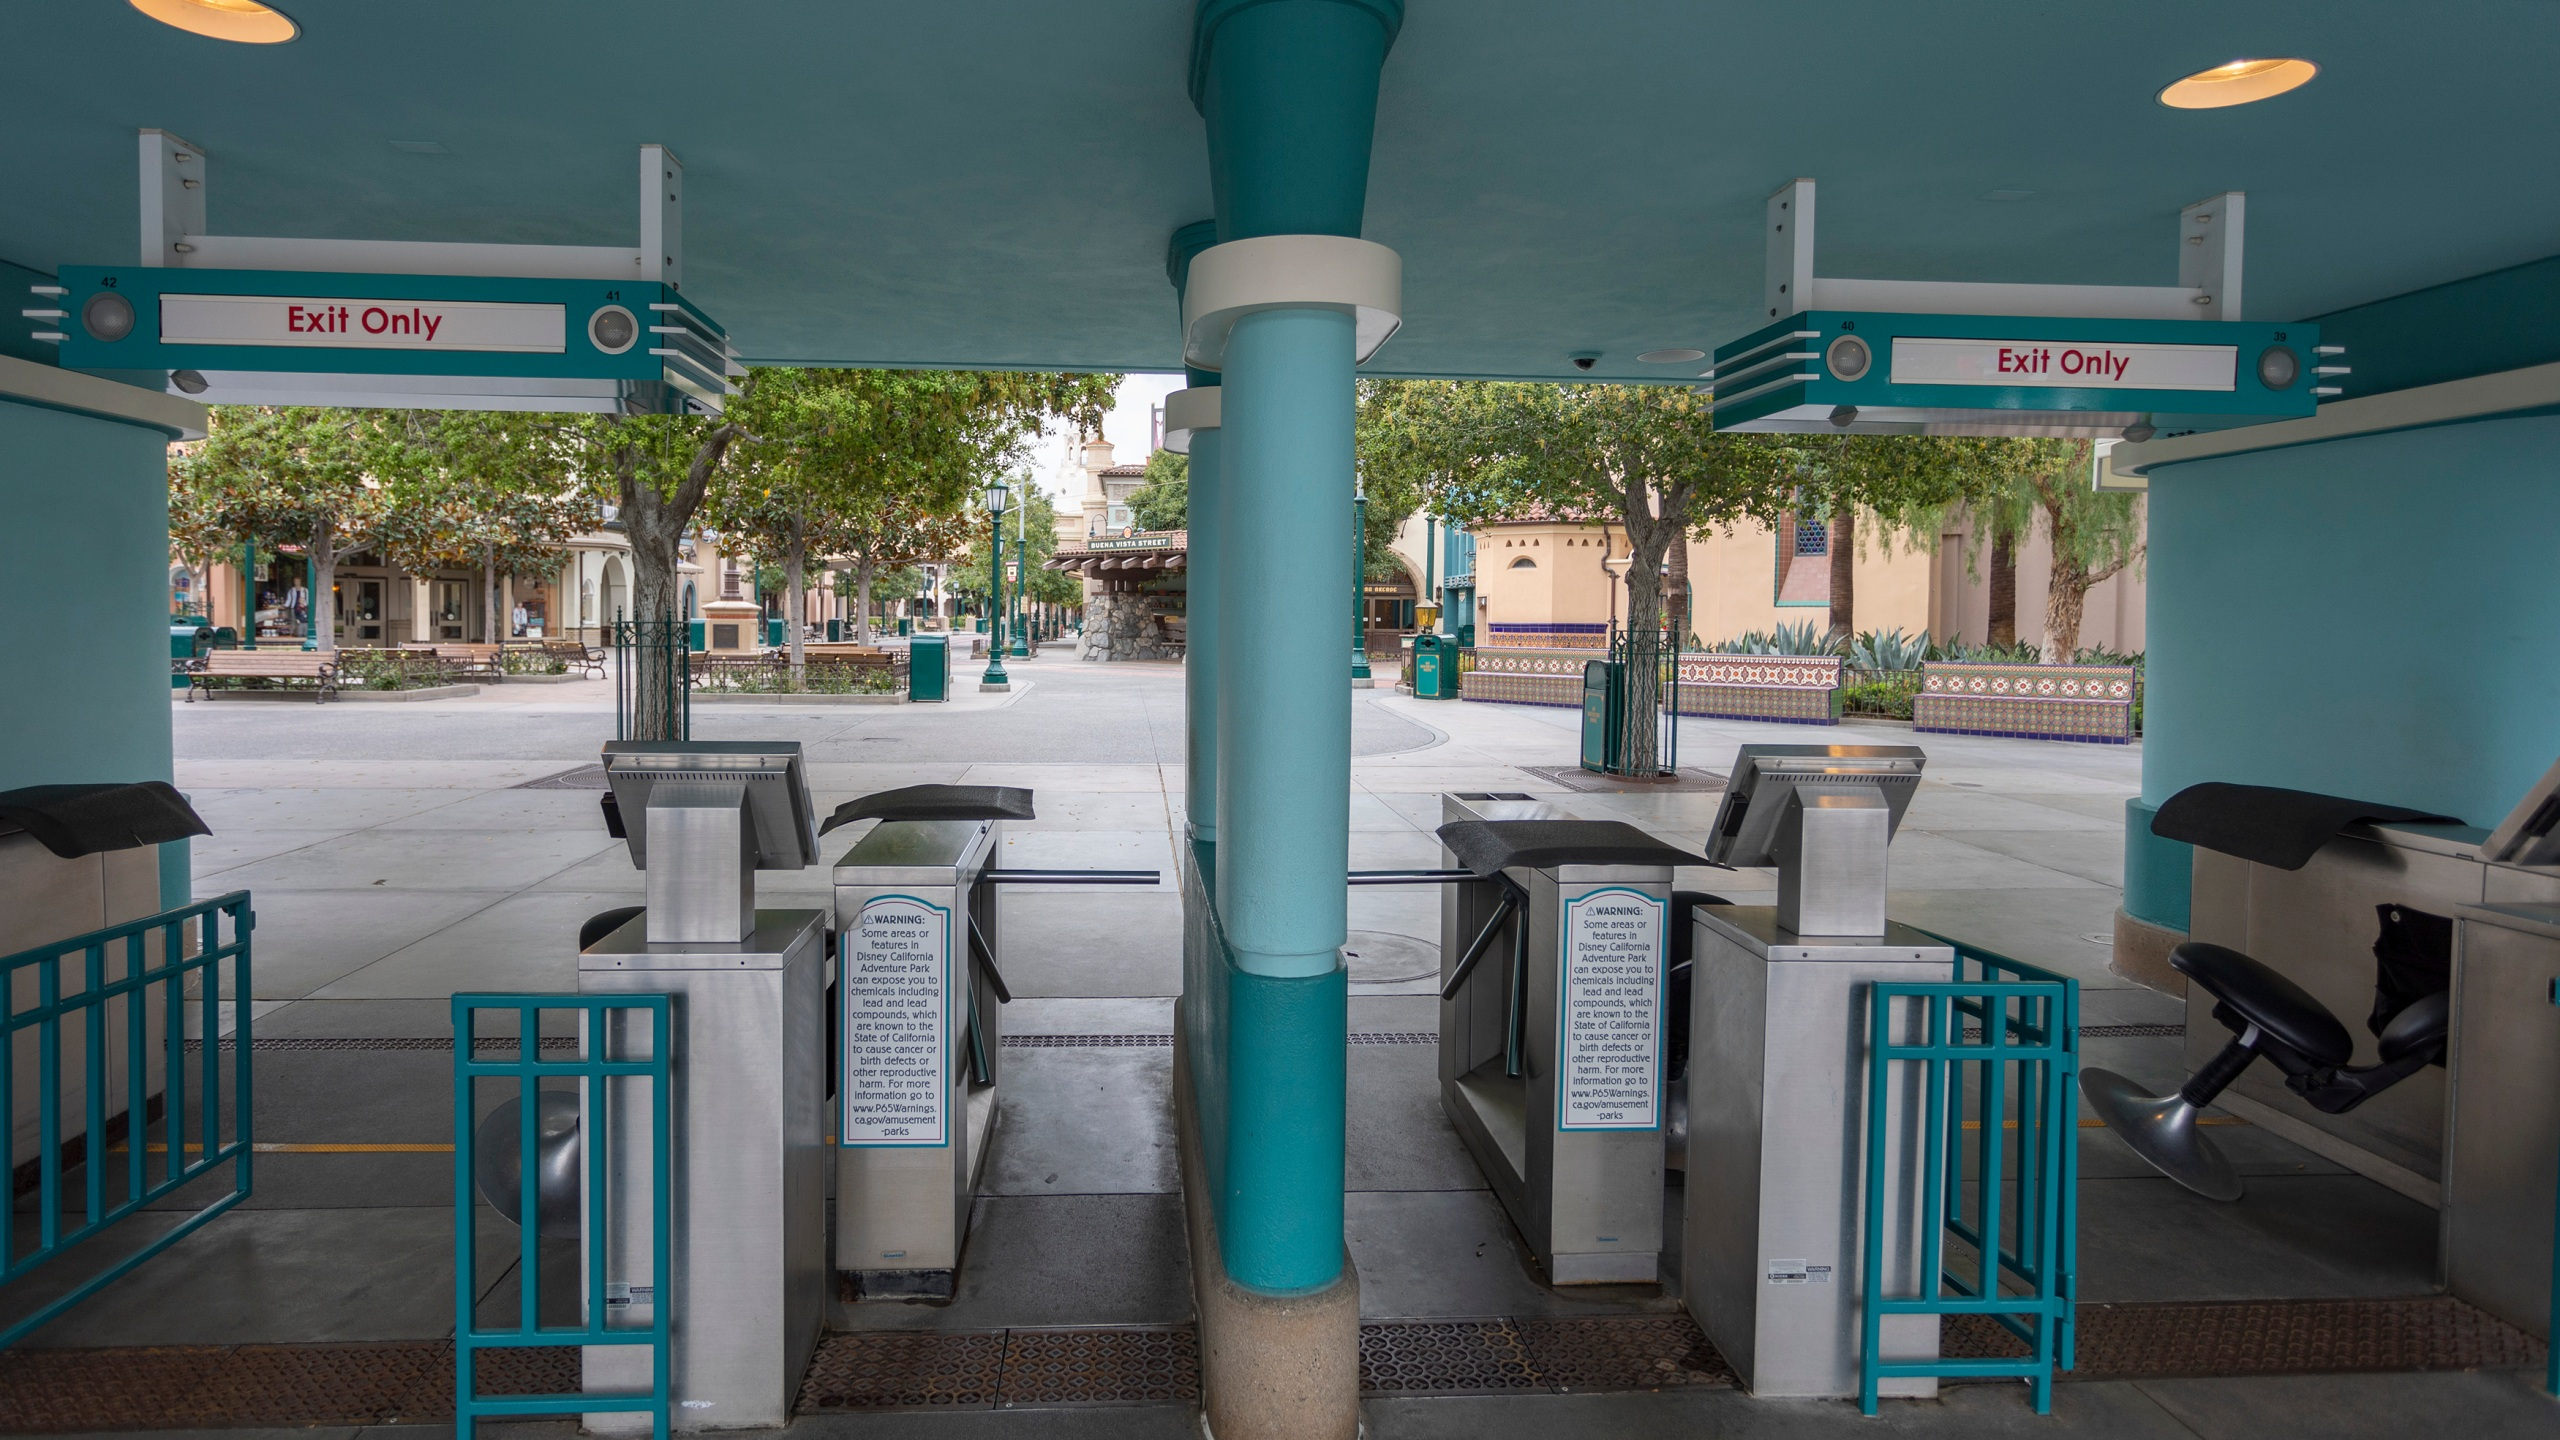 Disney California Adventure stands vacant on March 14, 2020, the first day of the closure of Disneyland and Disney California Adventure theme parks as fears of the spread of coronavirus continue. (David McNew/AFP via Getty Images)